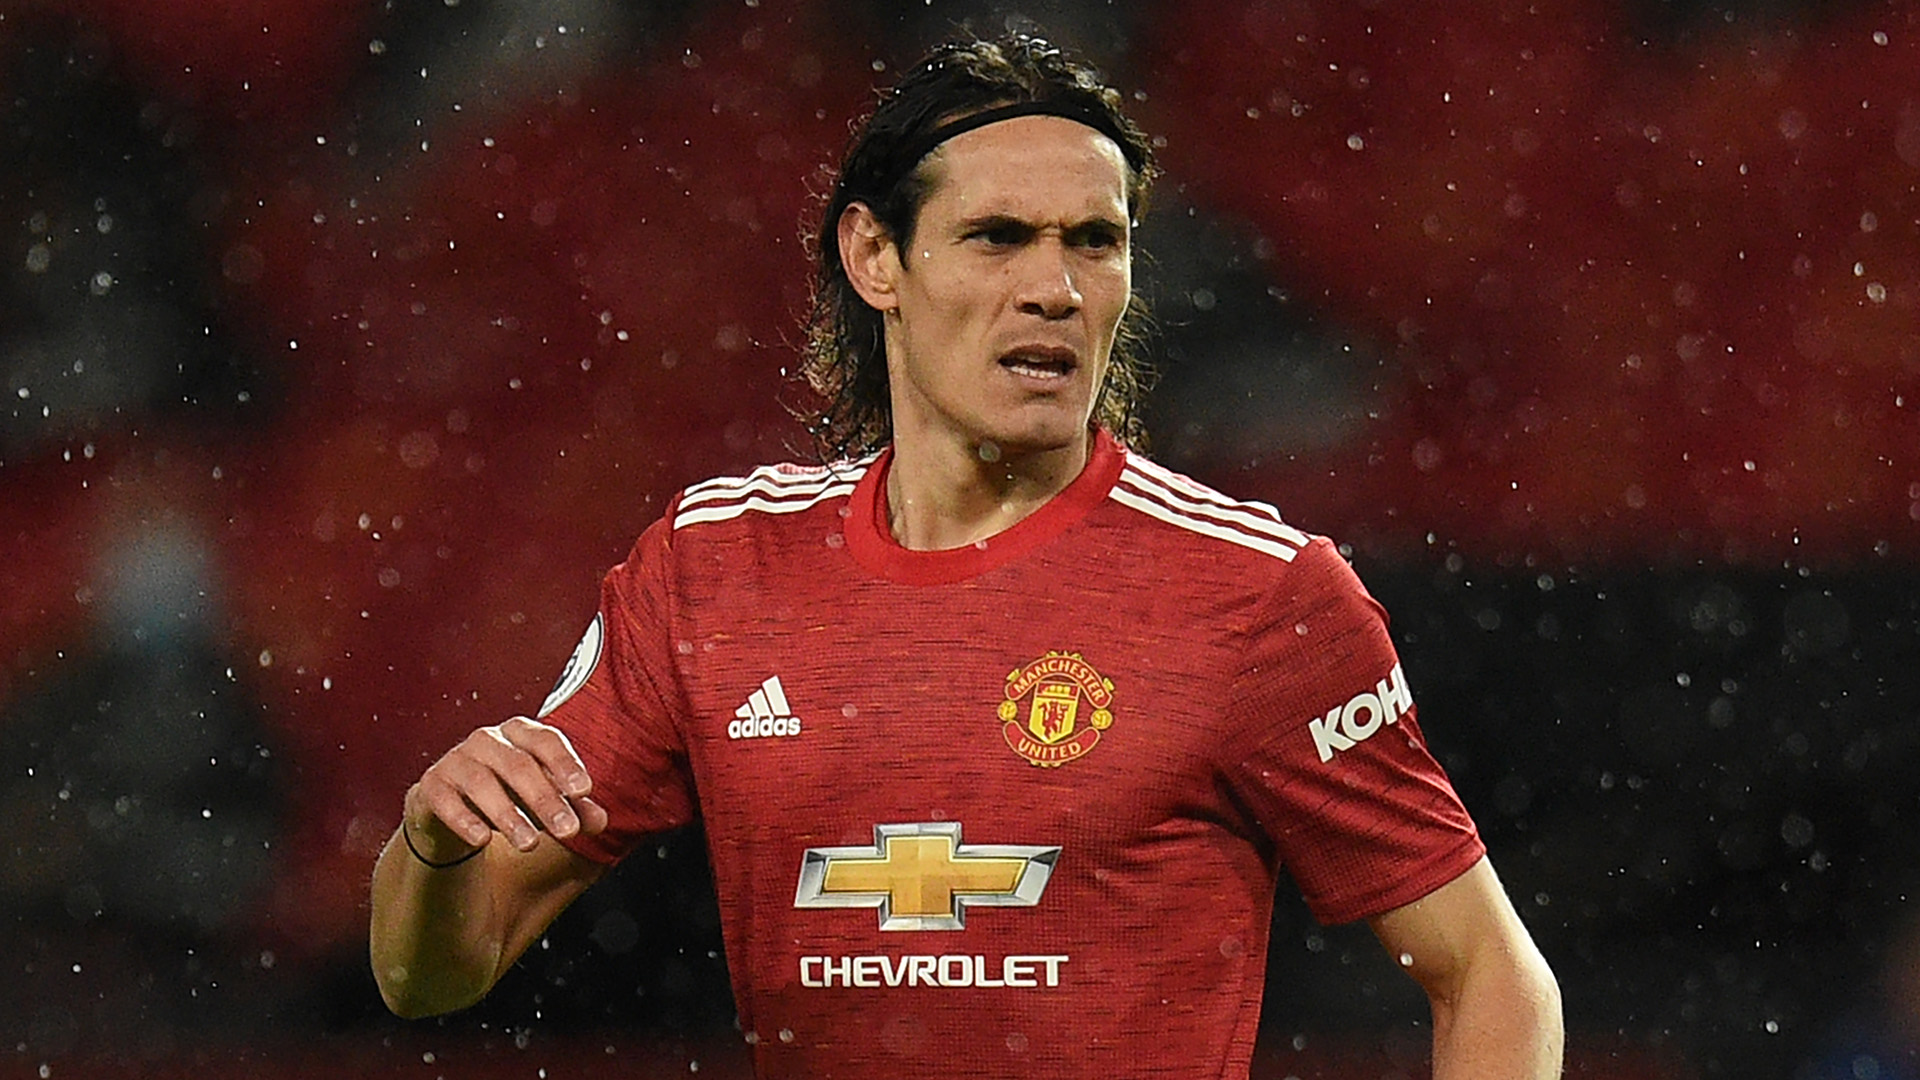 Cavani gives Manchester United 'another dimension', says Red Devils team-mate Rashford